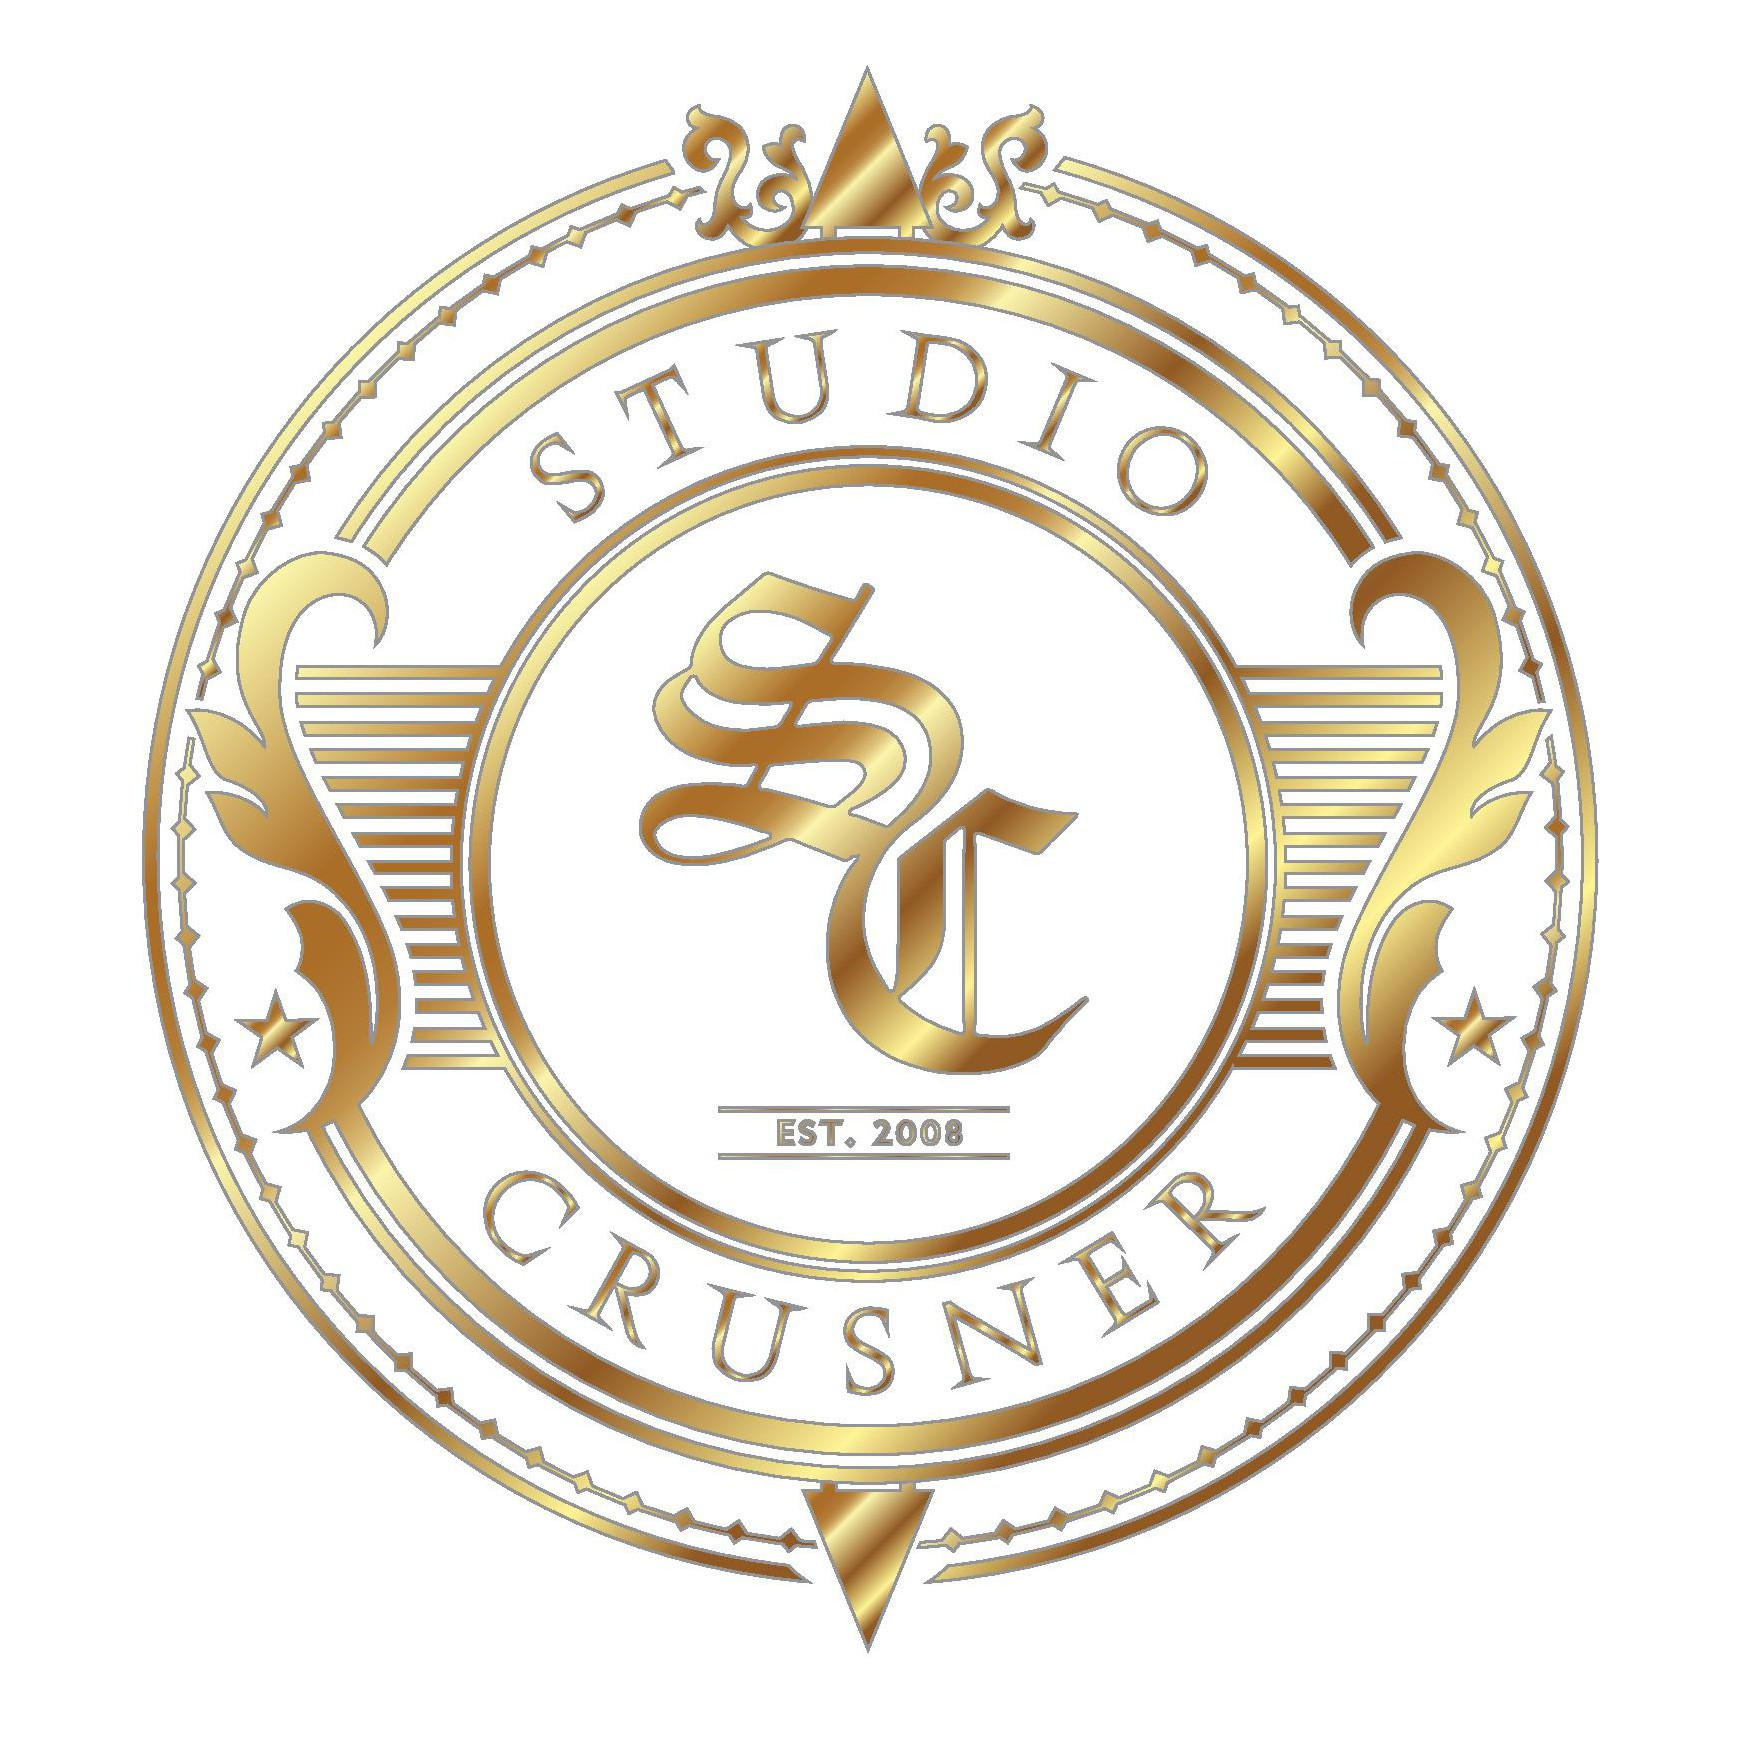 Studio Crusner favicon